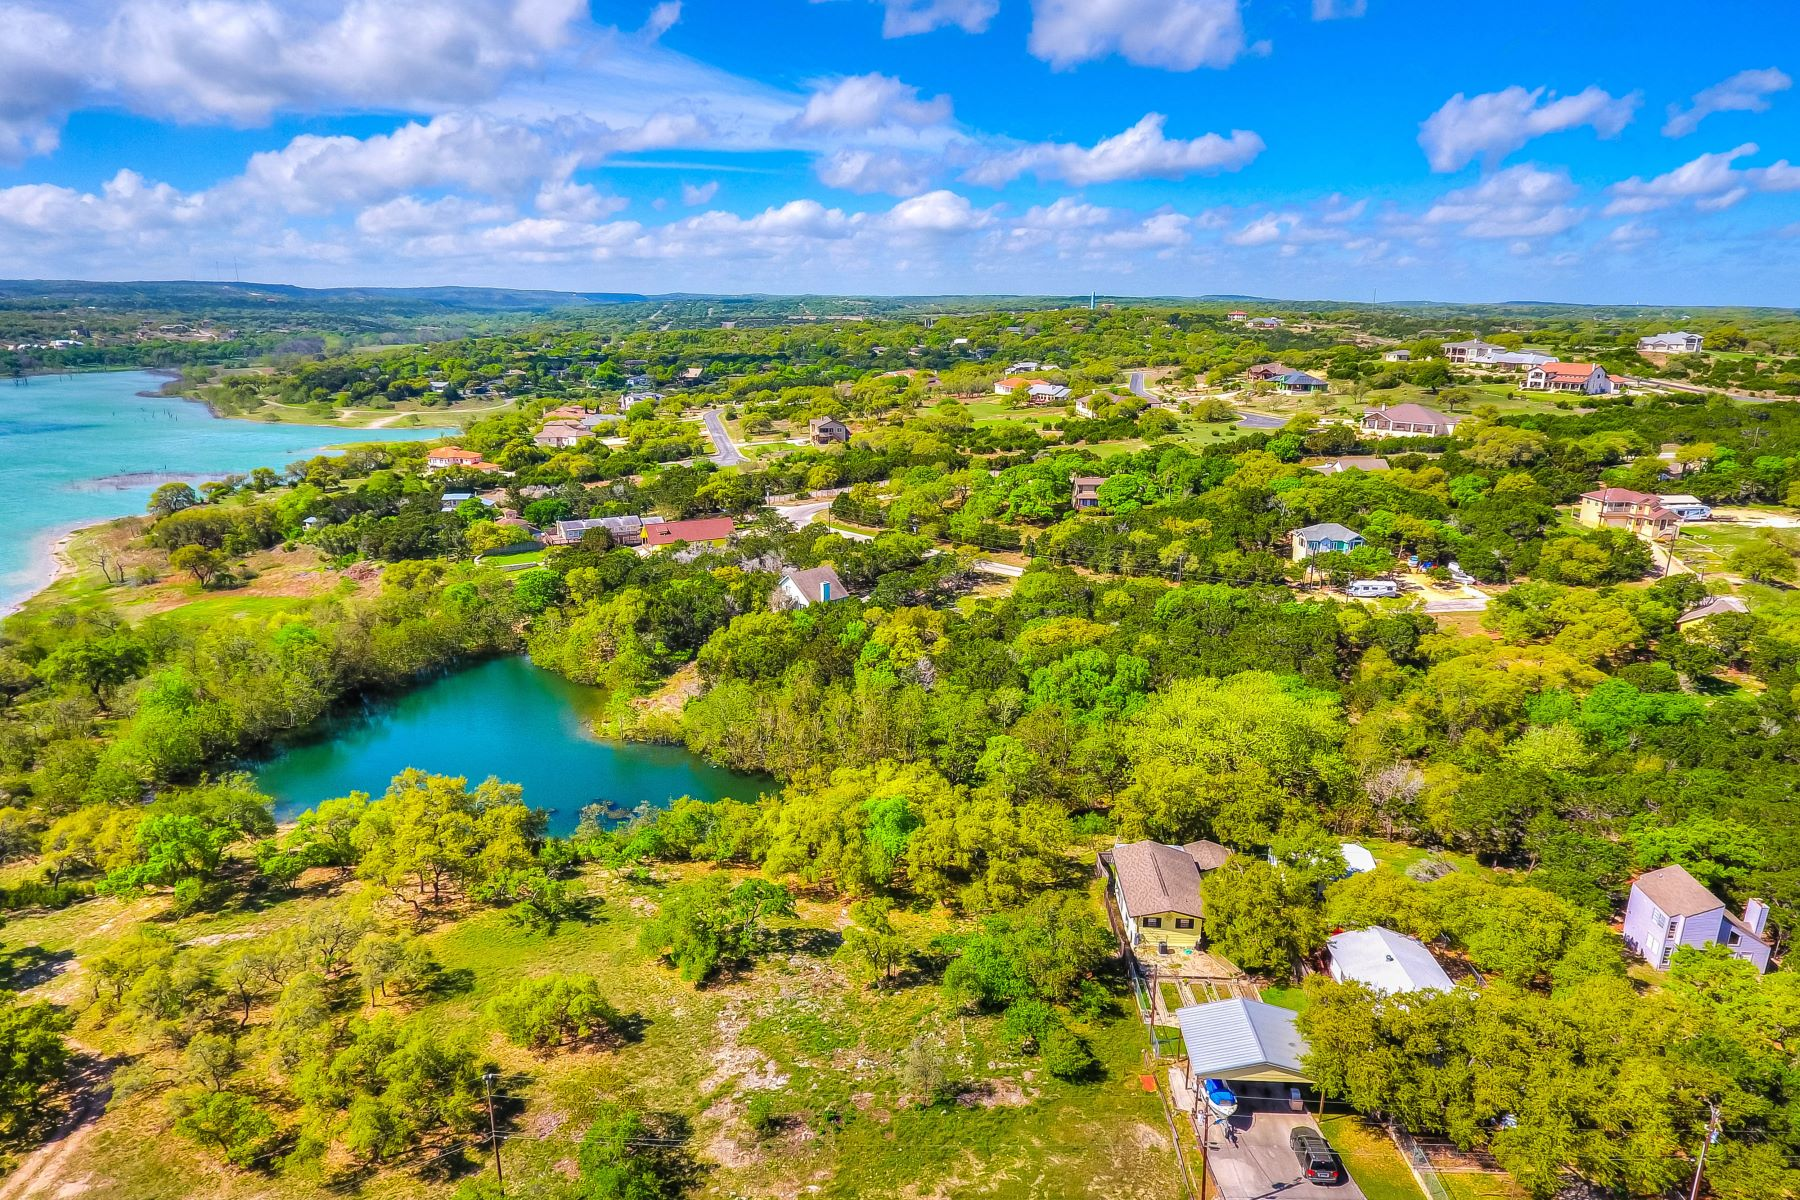 Land for Sale at Canyon Lake Lakefront Lots 1520 Canyon Lake Dr, Canyon Lake, Texas 78133 United States